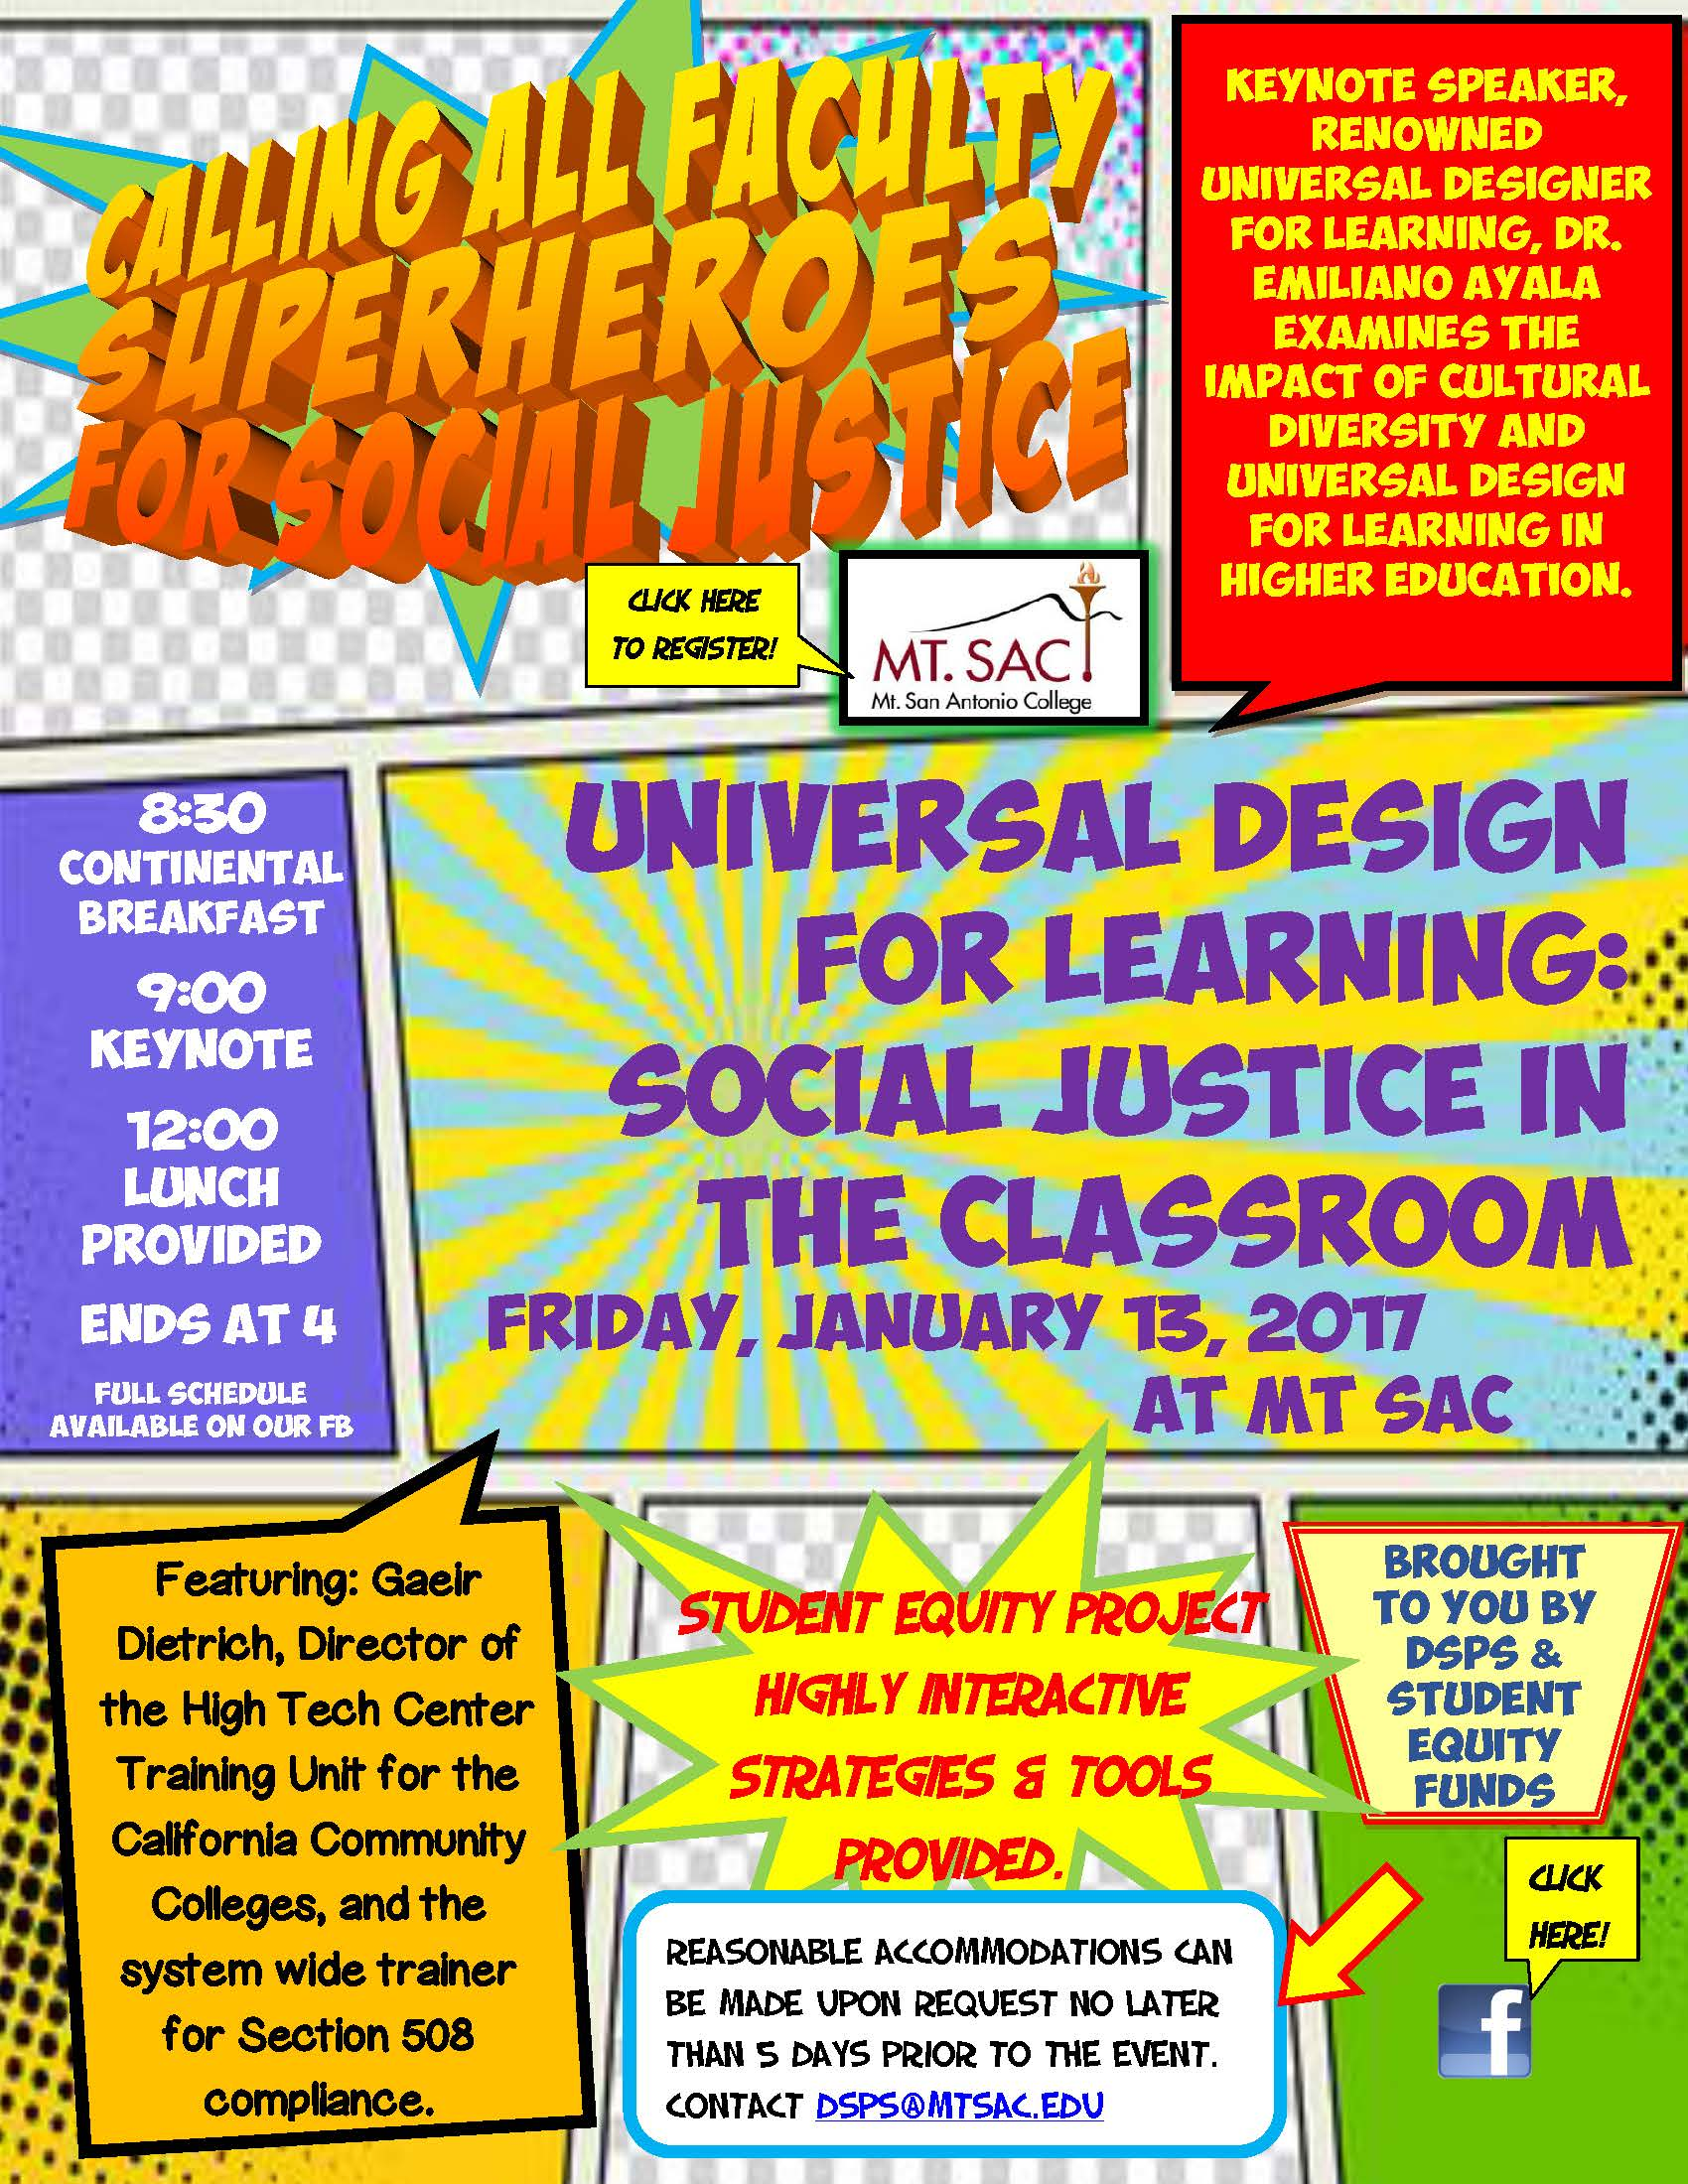 UDL Symposium Flyer